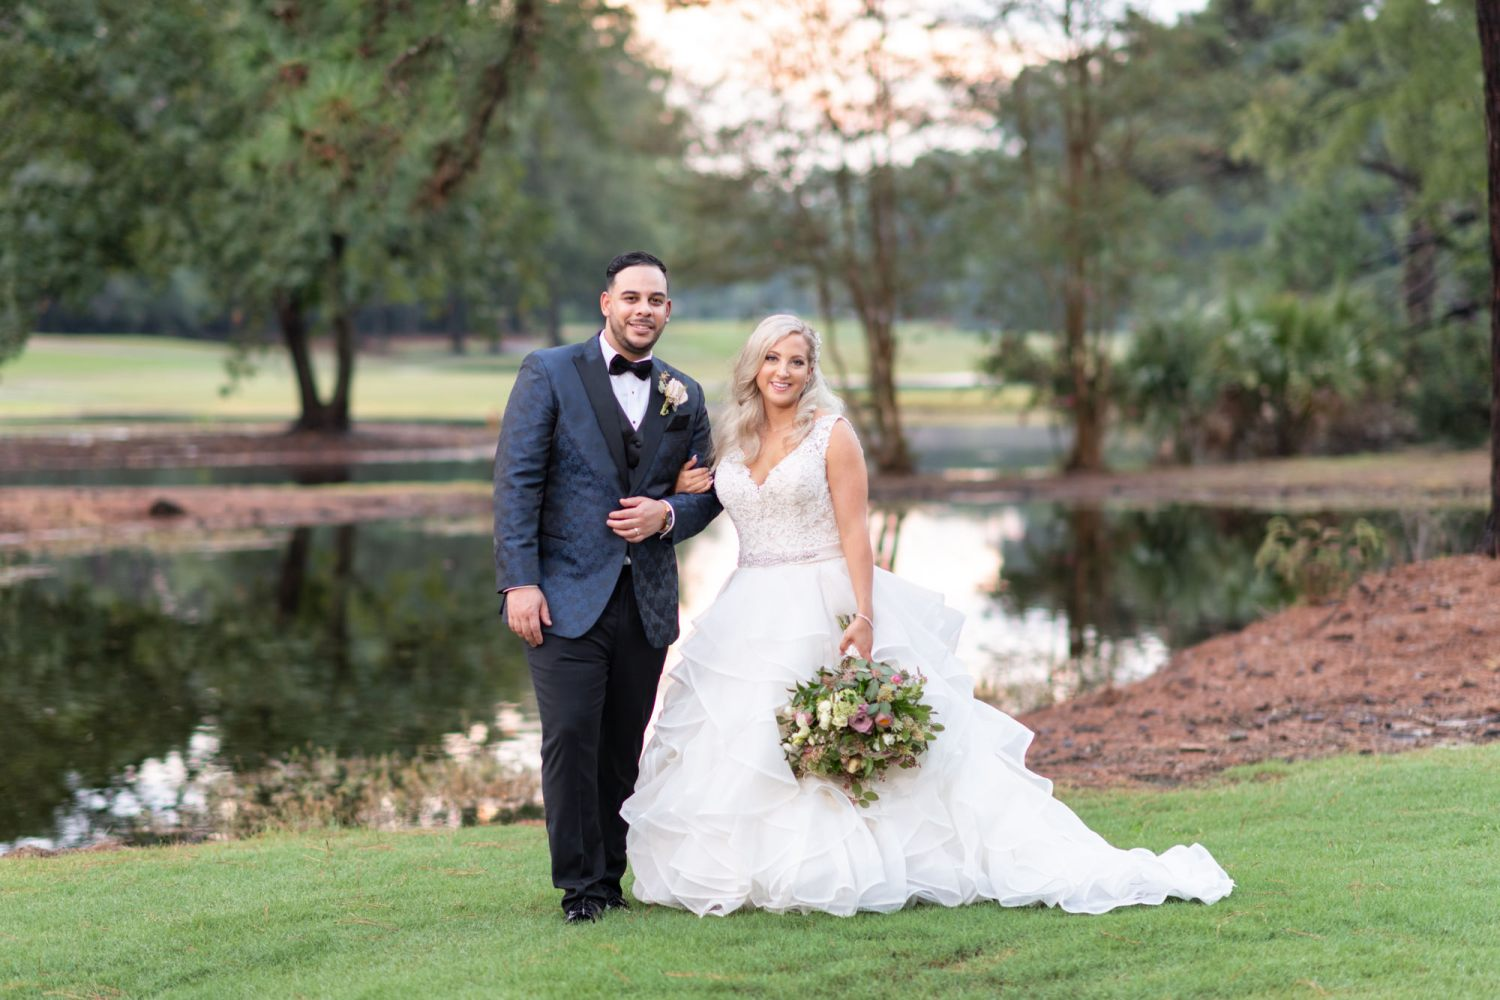 Portraits of the bride and groom in front of the golf course lake - Litchfield Country Club